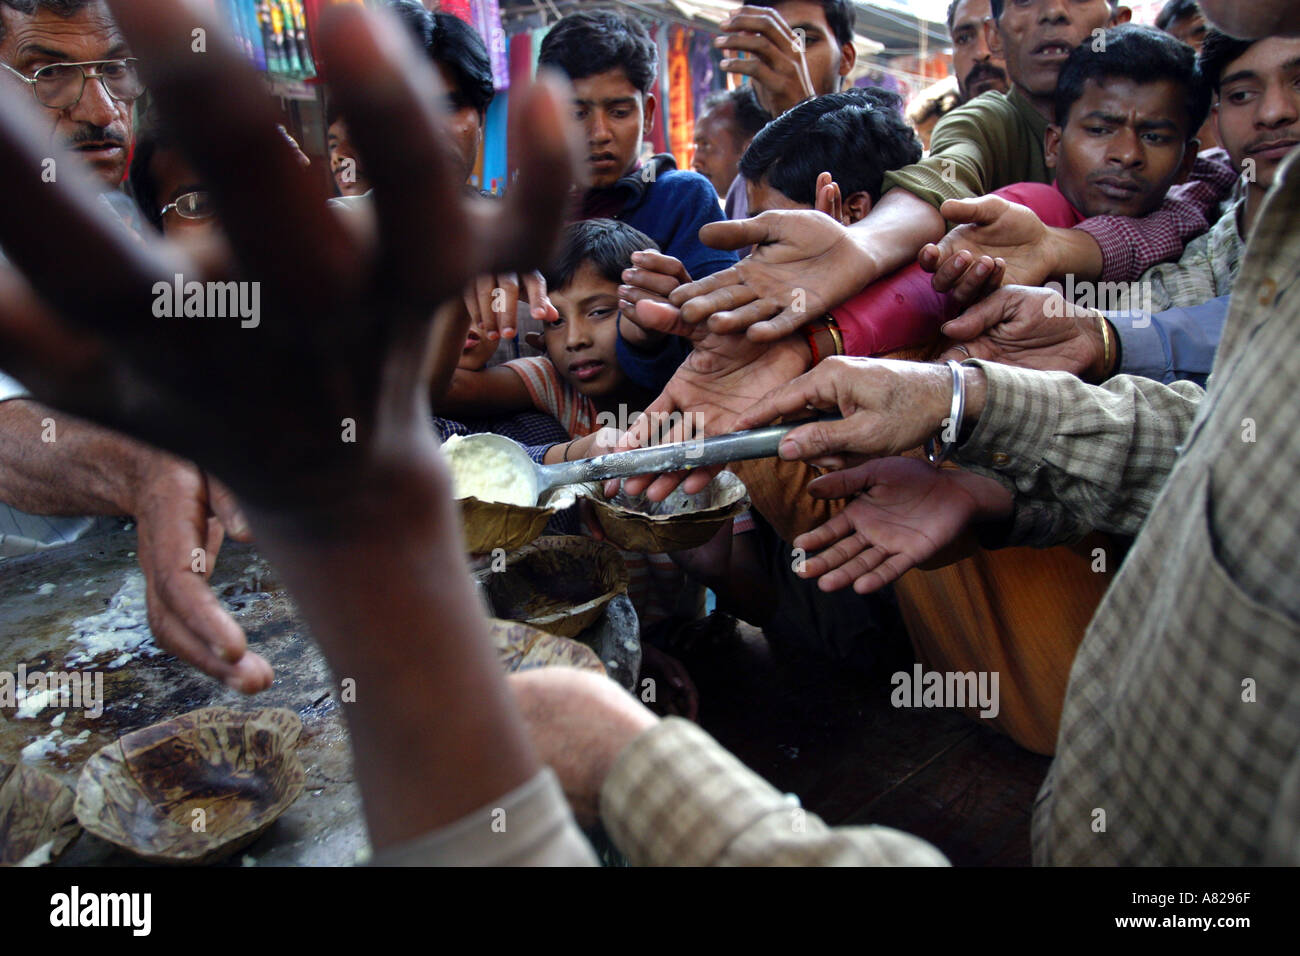 A stand where food is given away for free to poor people at a street in Delhi India - Stock Image